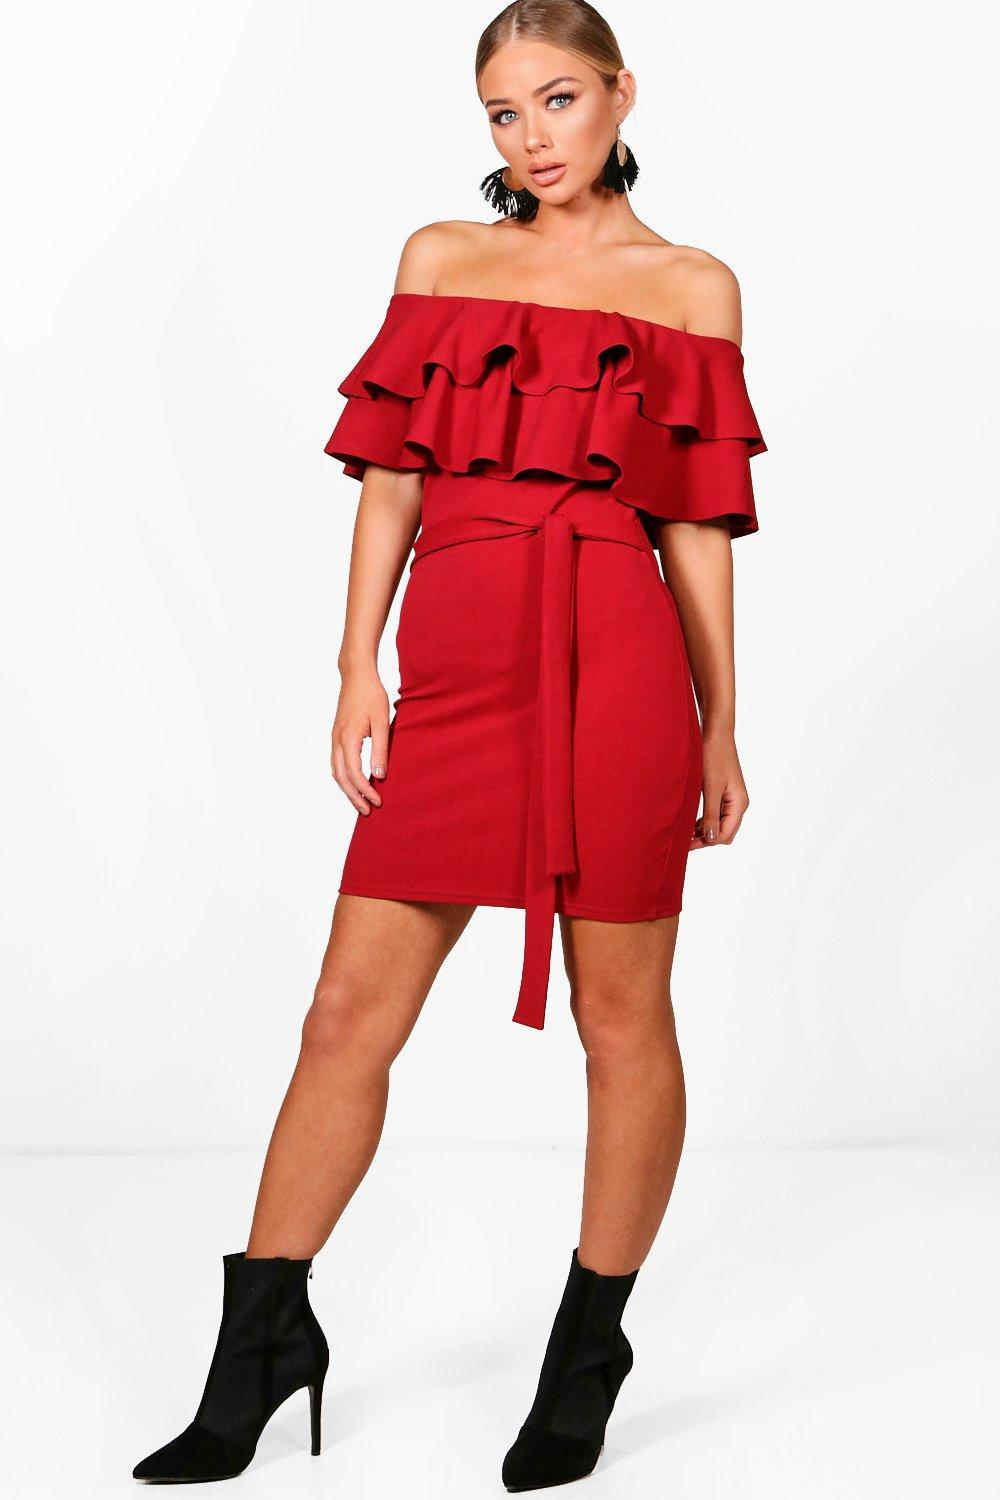 Boohoo Bardot Layered Frill Belted Bodycon Dress Professional For Sale Cheap Low Price Fee Shipping bQu00